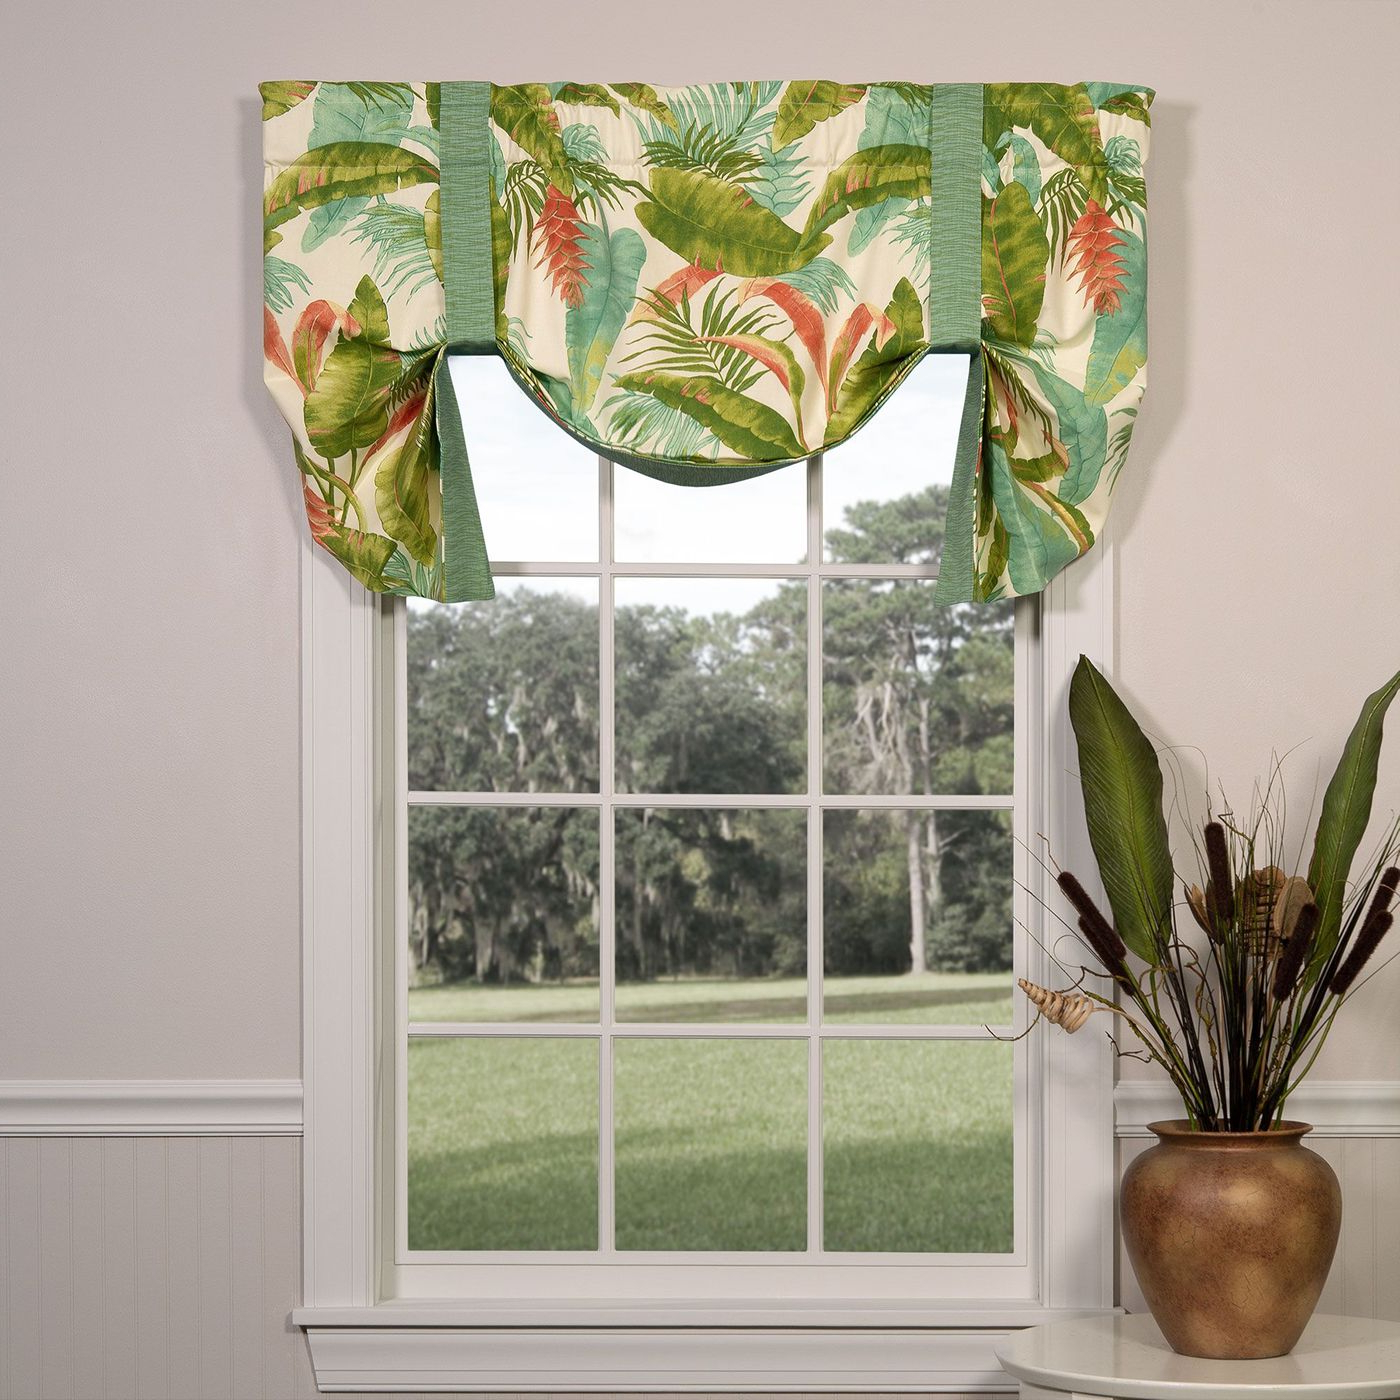 Tie Up Valances: Solid Colored, Patterned, Prints In Latest Prescott Insulated Tie Up Window Shade (View 16 of 20)